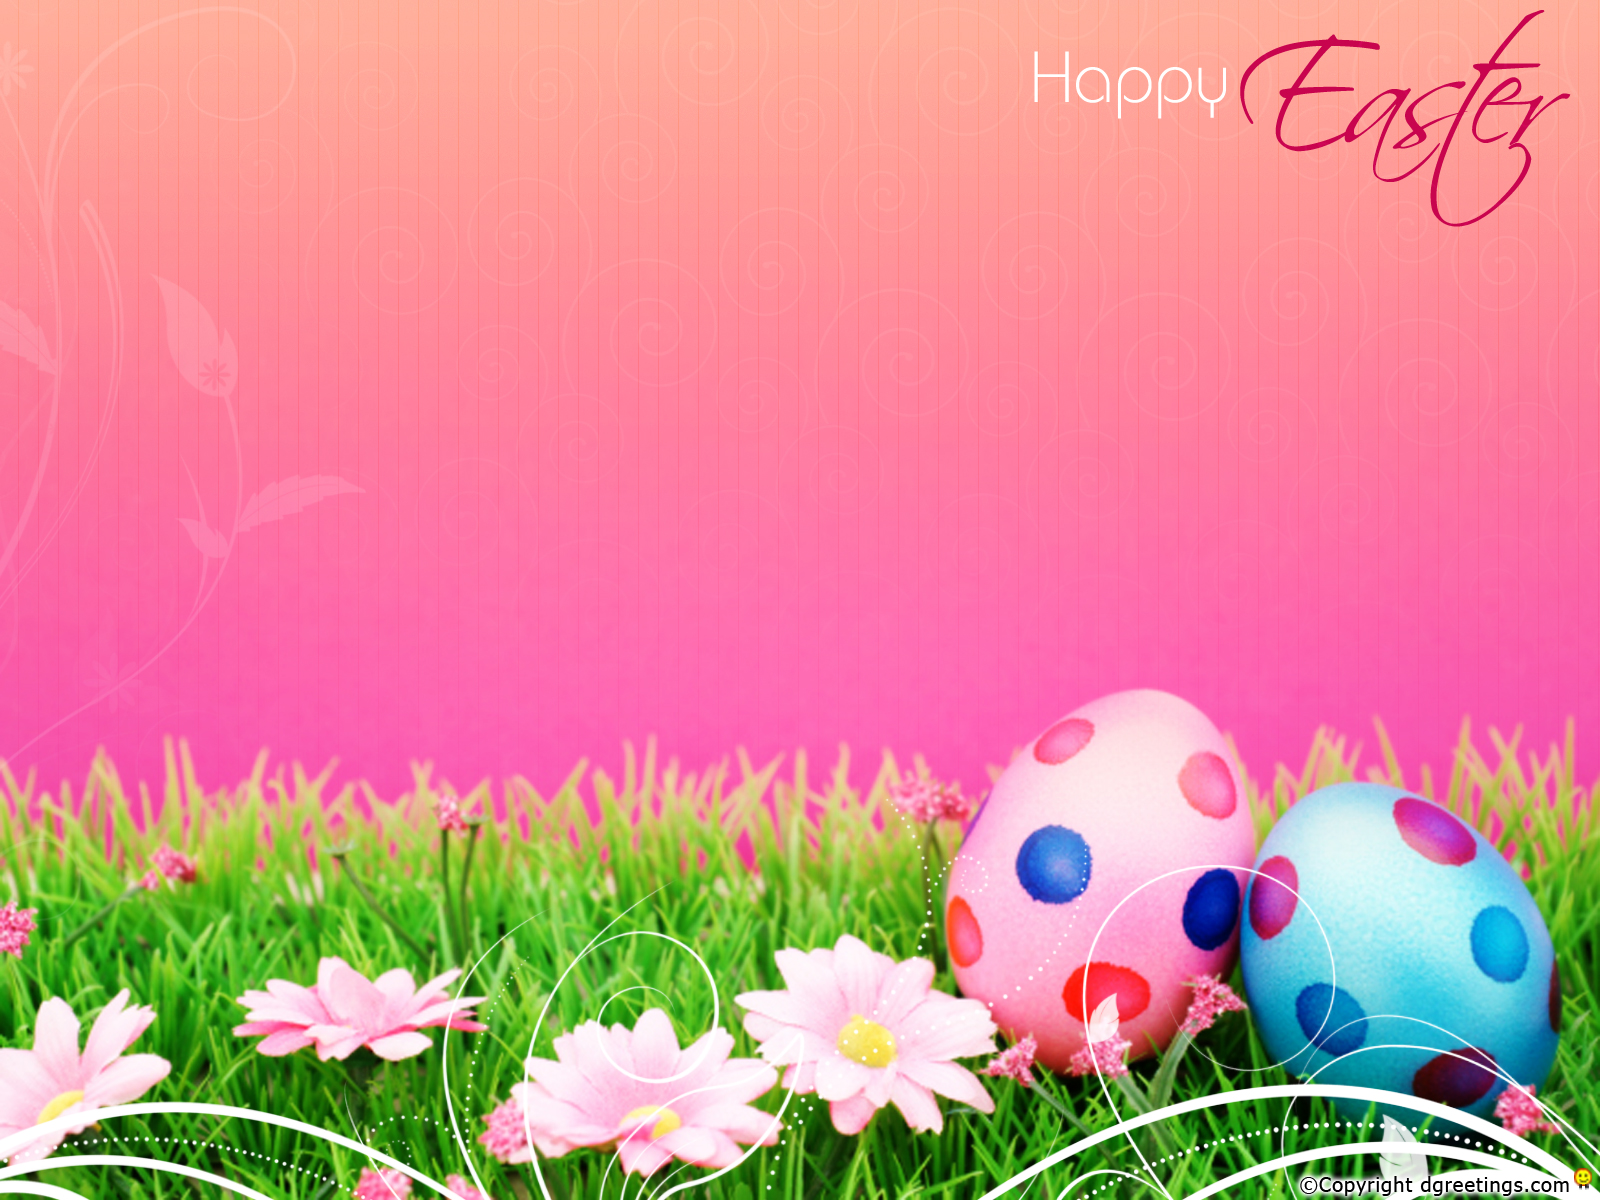 happy easter wallpaper christian - photo #41